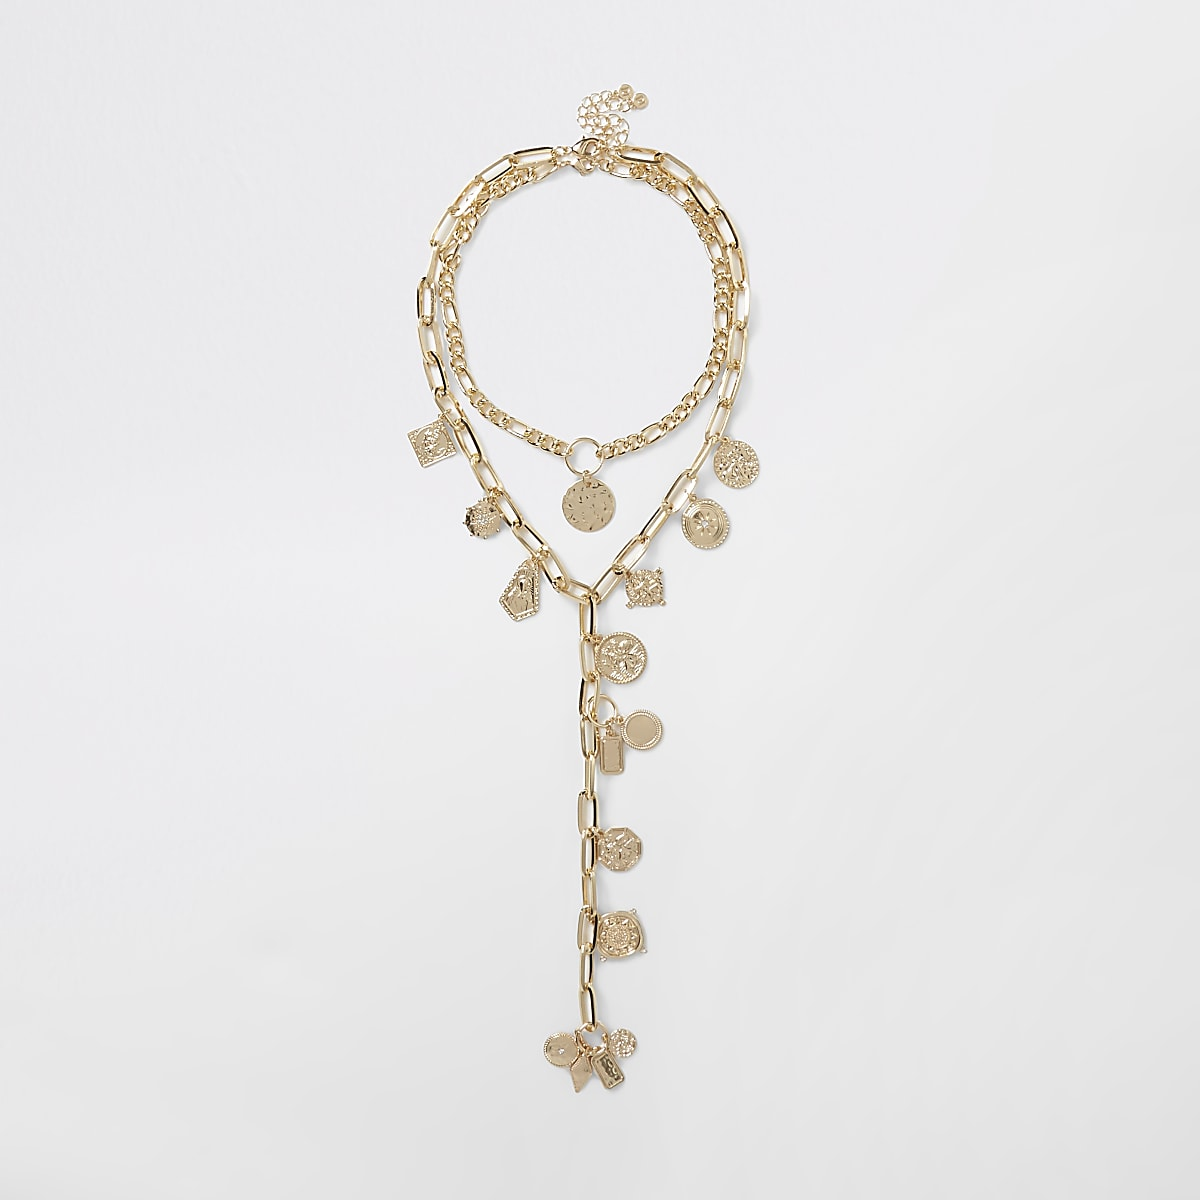 Gold color coin layered drop necklace